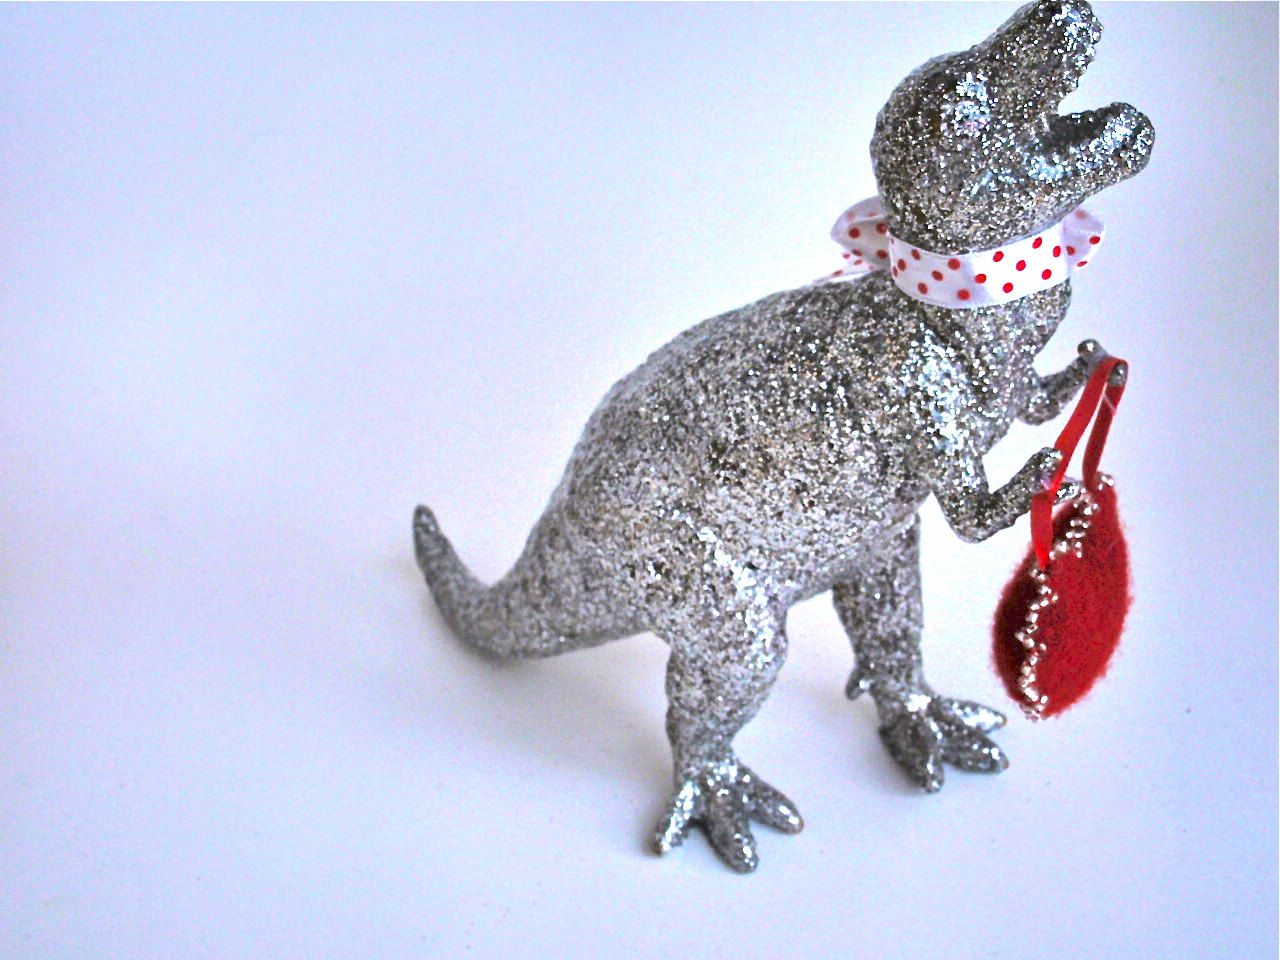 T Rex Silver Glitter Valentine With Wool Felted And Hand Beaded Heart. $12.00, via Etsy.